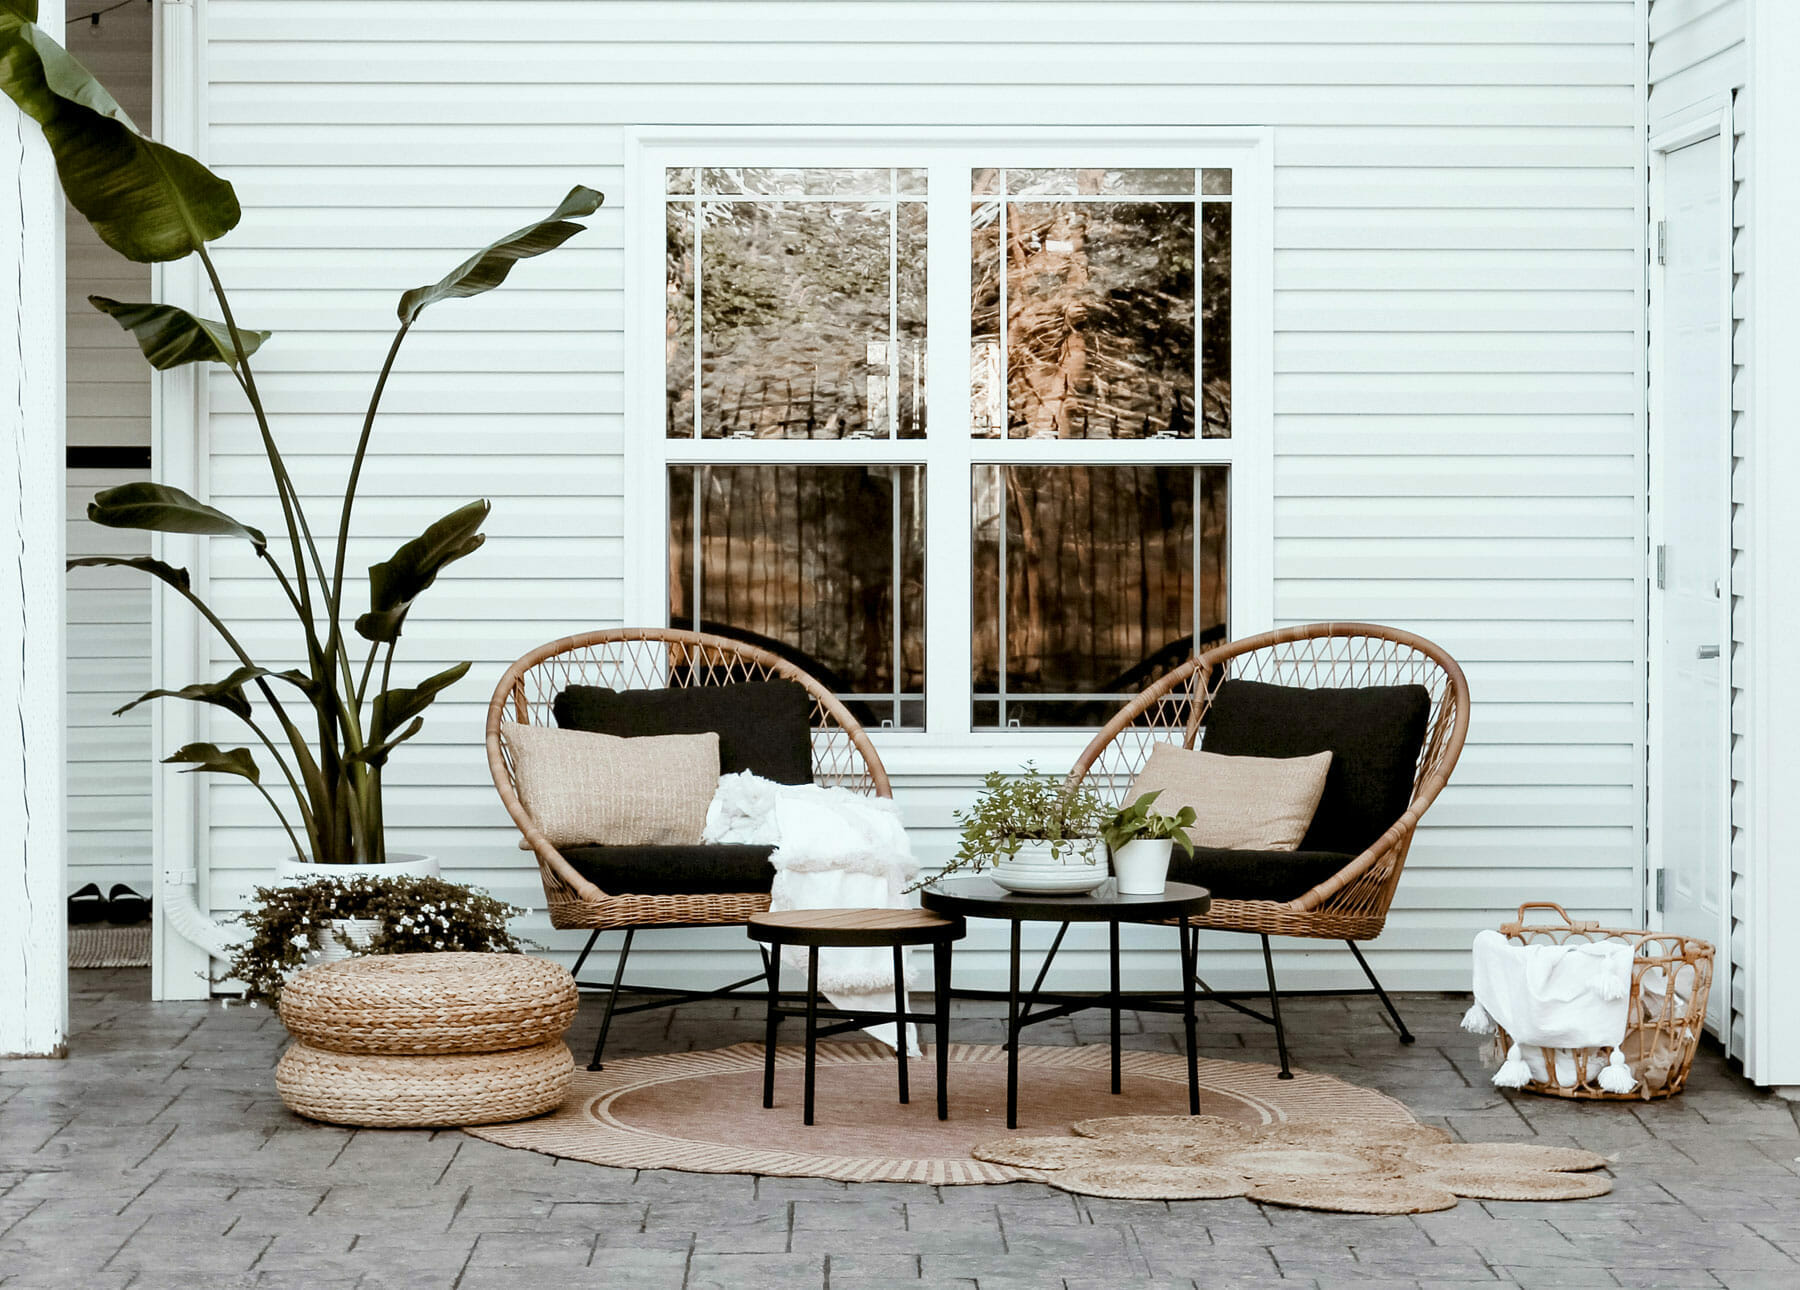 Two Aeri Lounge Chairs from Article are set up with a large plant and outdoor rug.